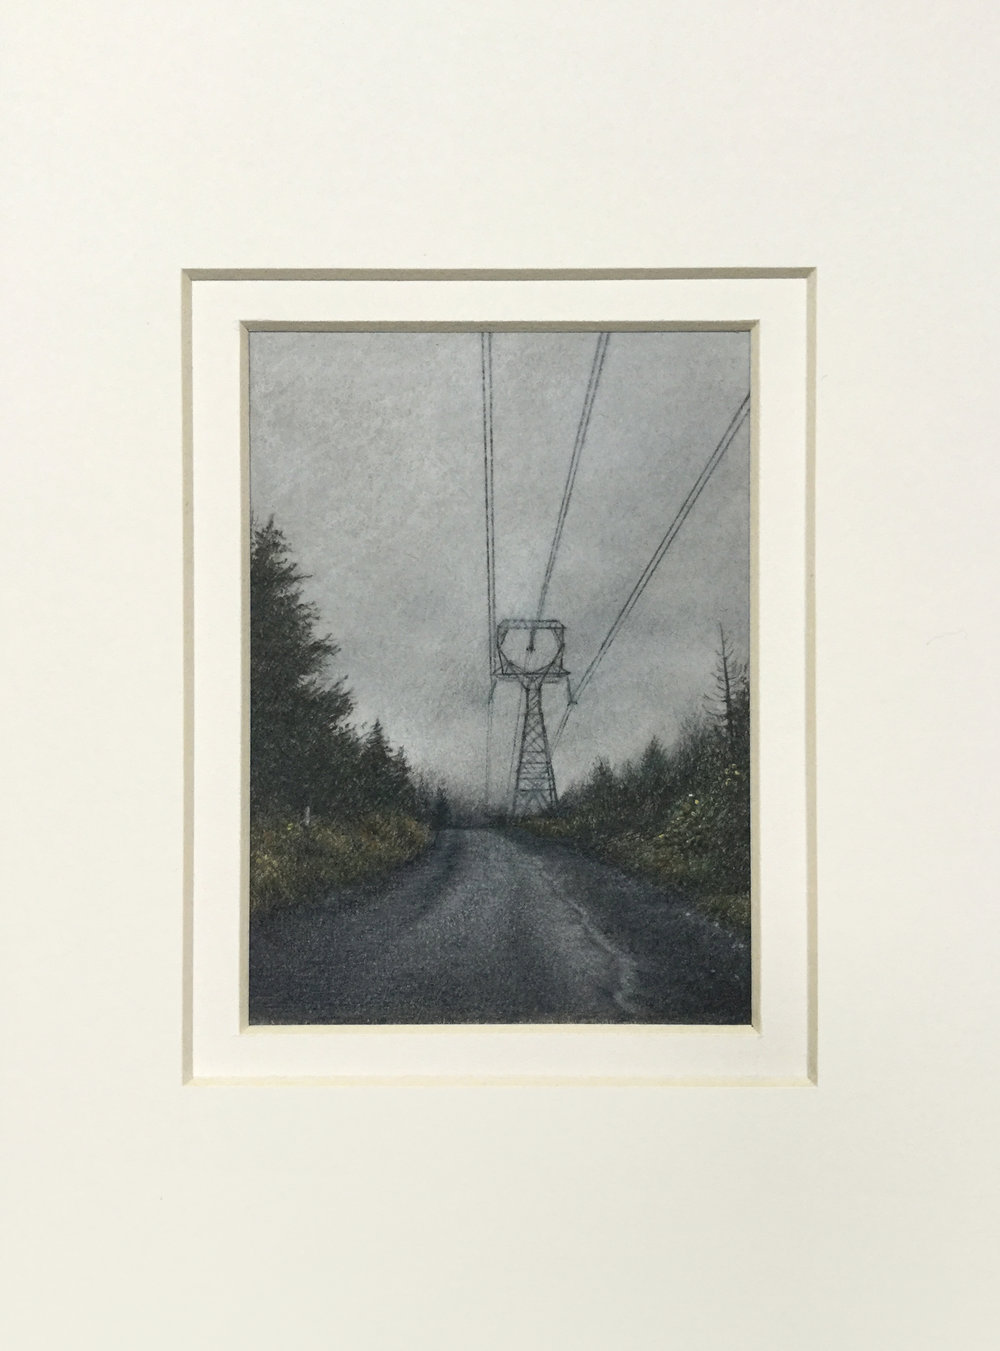 002_PowerLines_03.jpg